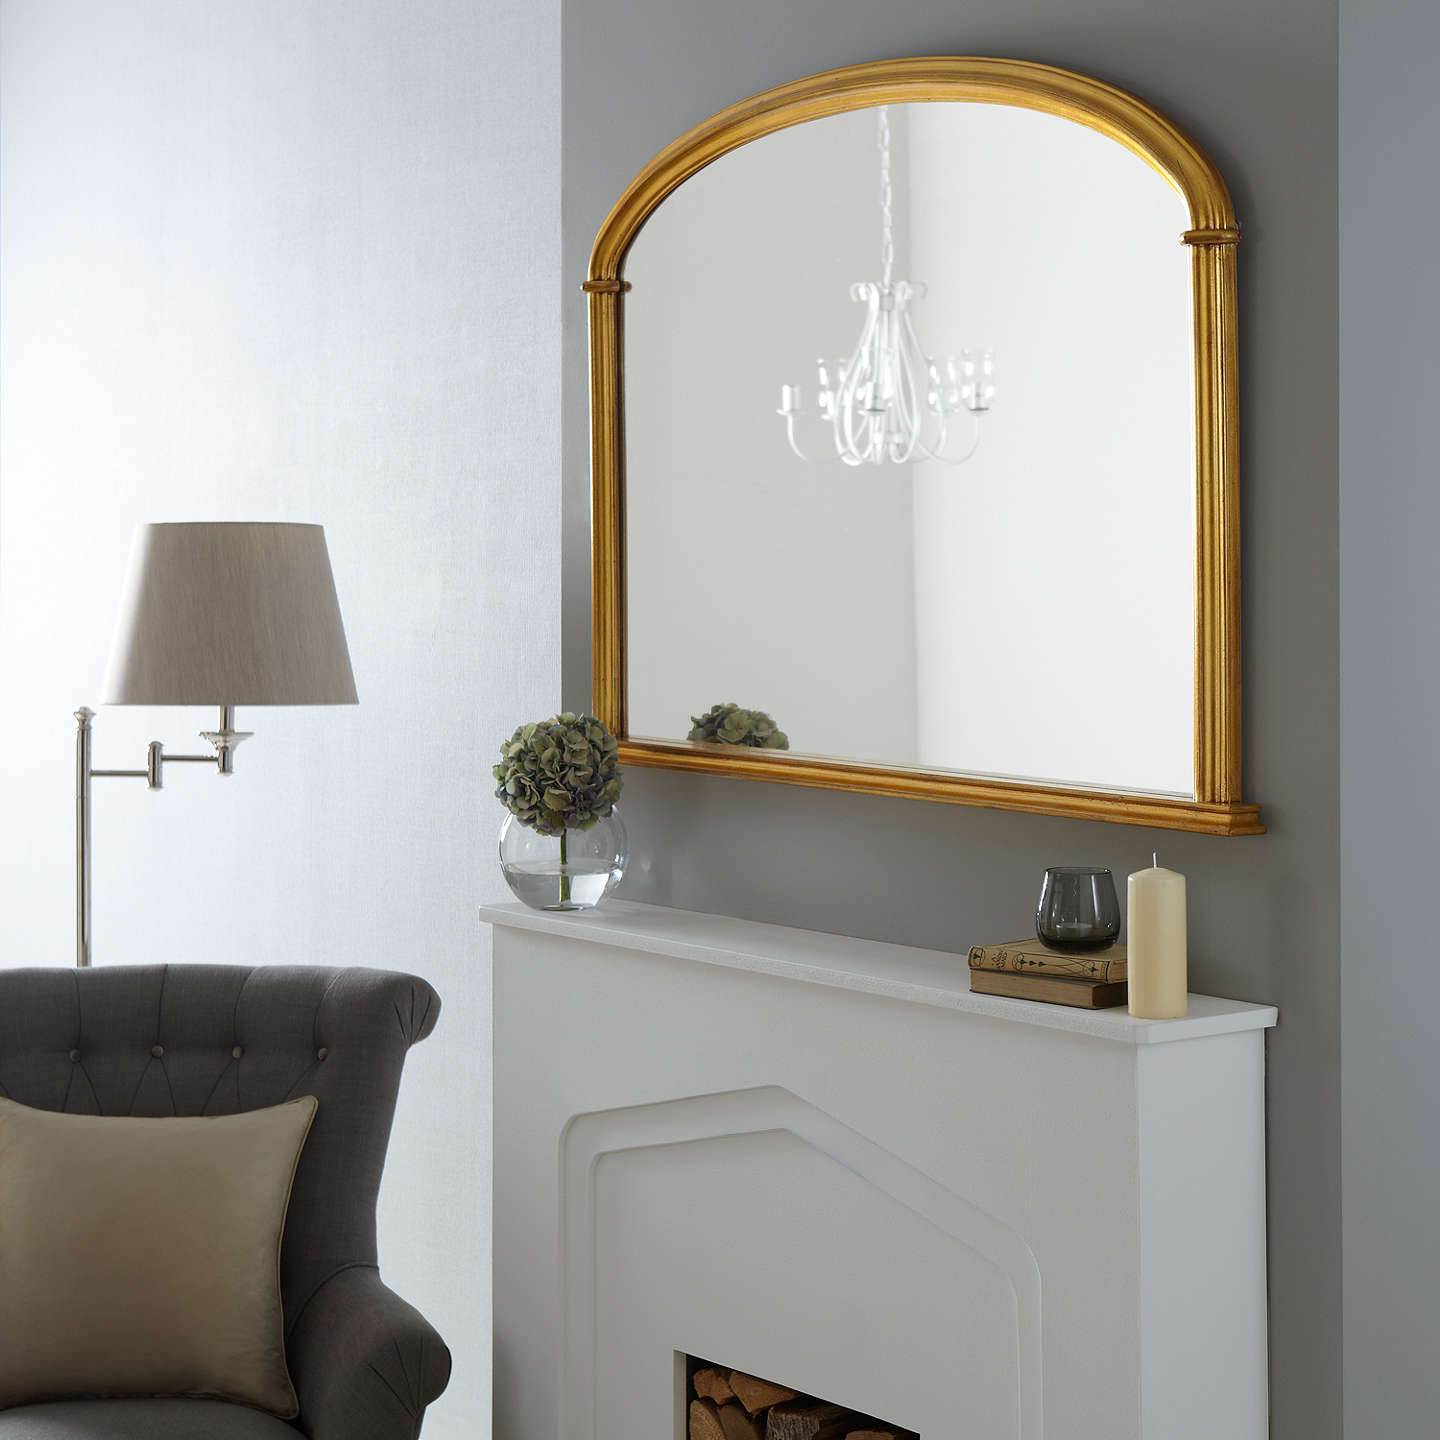 john lewis eve overmantel mirror 84 x 124cm at john lewis. Black Bedroom Furniture Sets. Home Design Ideas